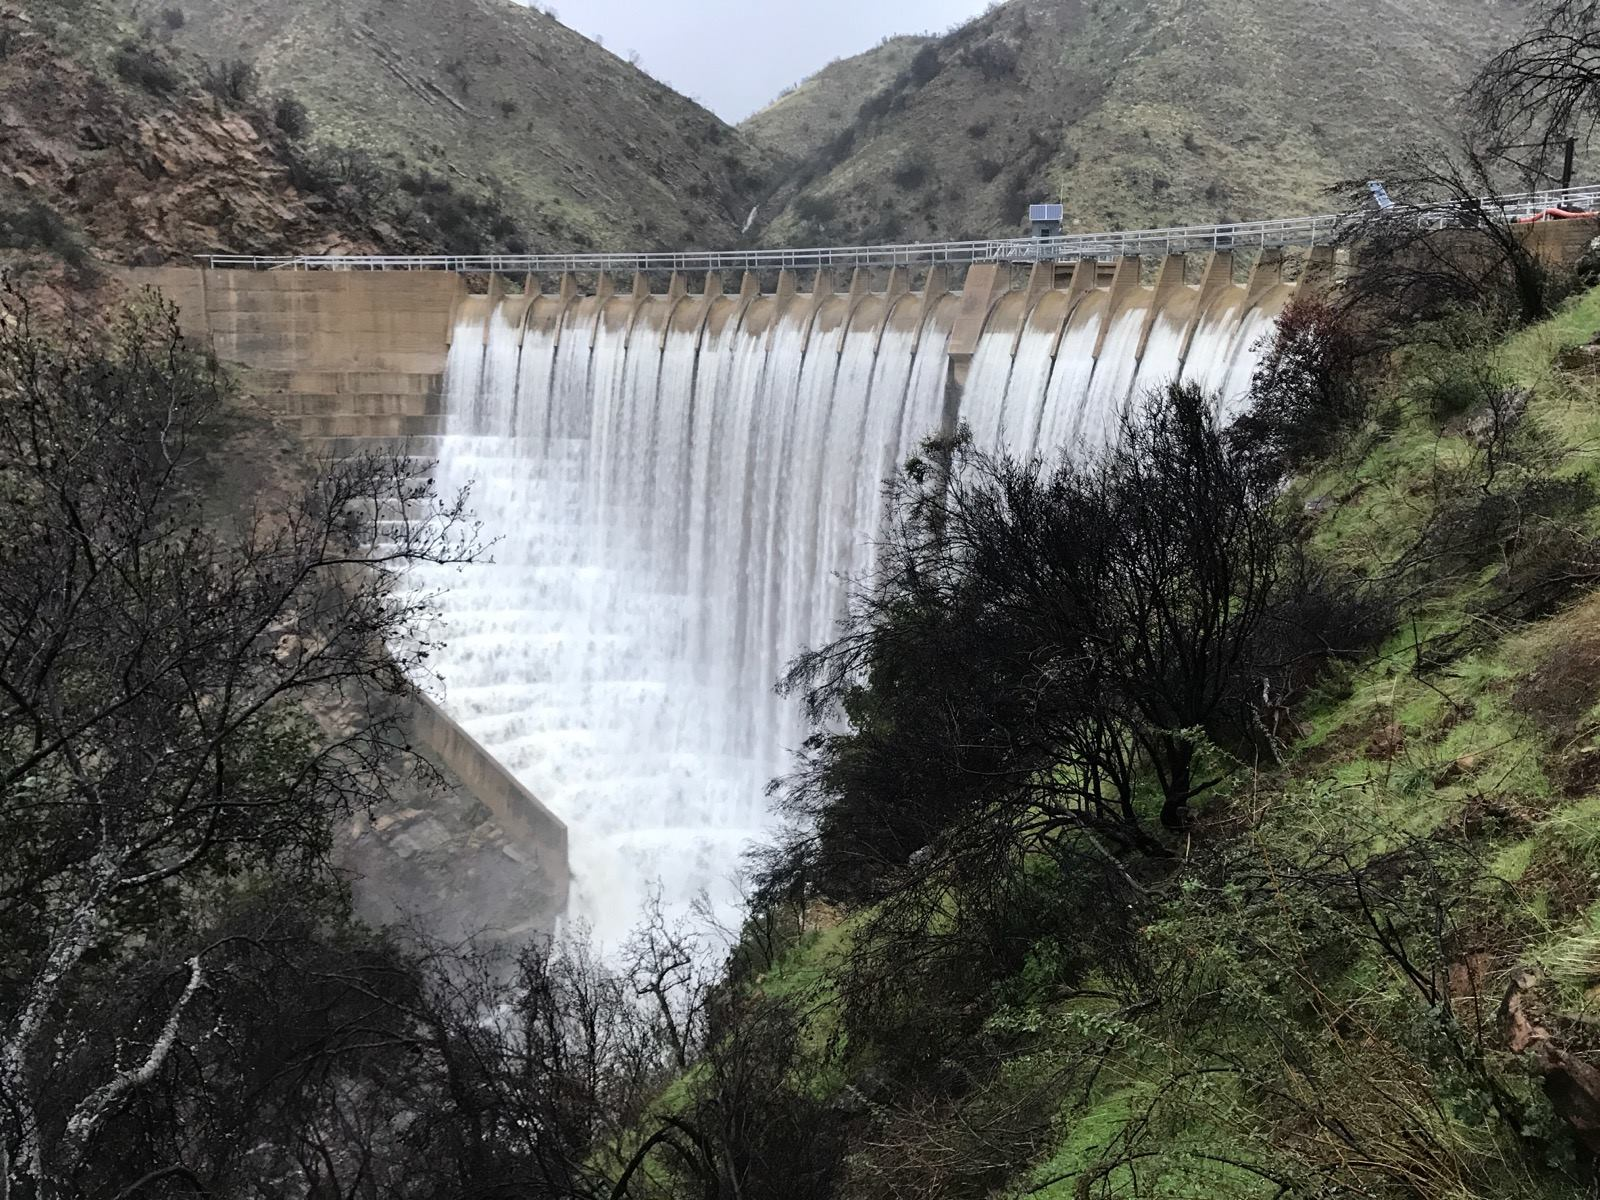 February, 2019. Jameson Lake shown spilling over Juncal Dam for the first time since 2011.